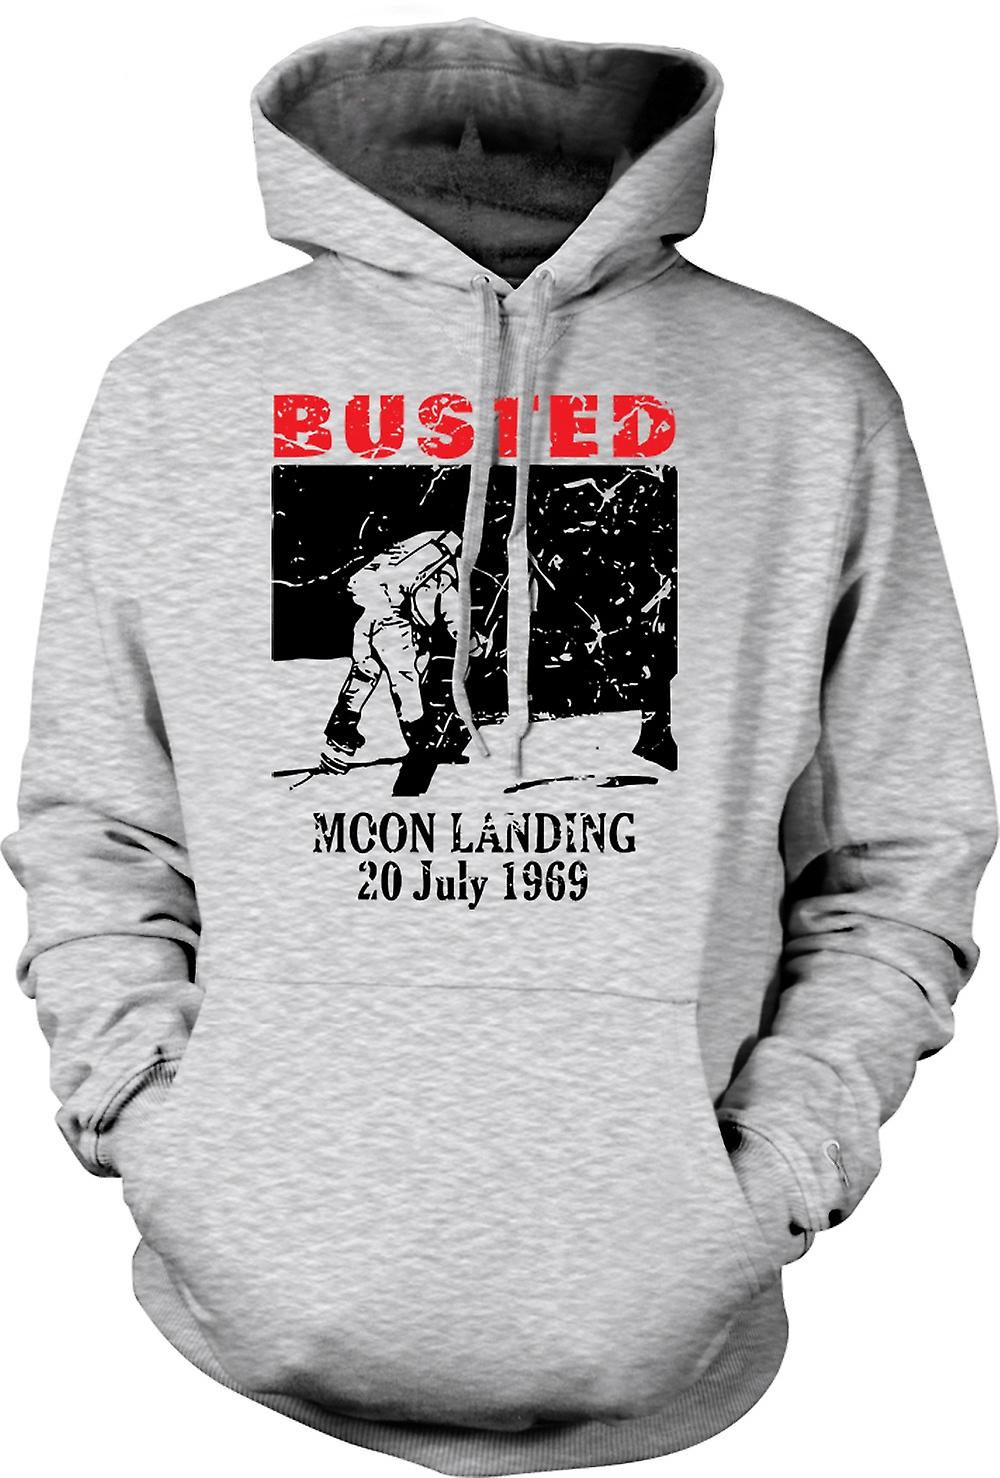 Mens Hoodie - alunissage Hoax 1969 - Conspiracy